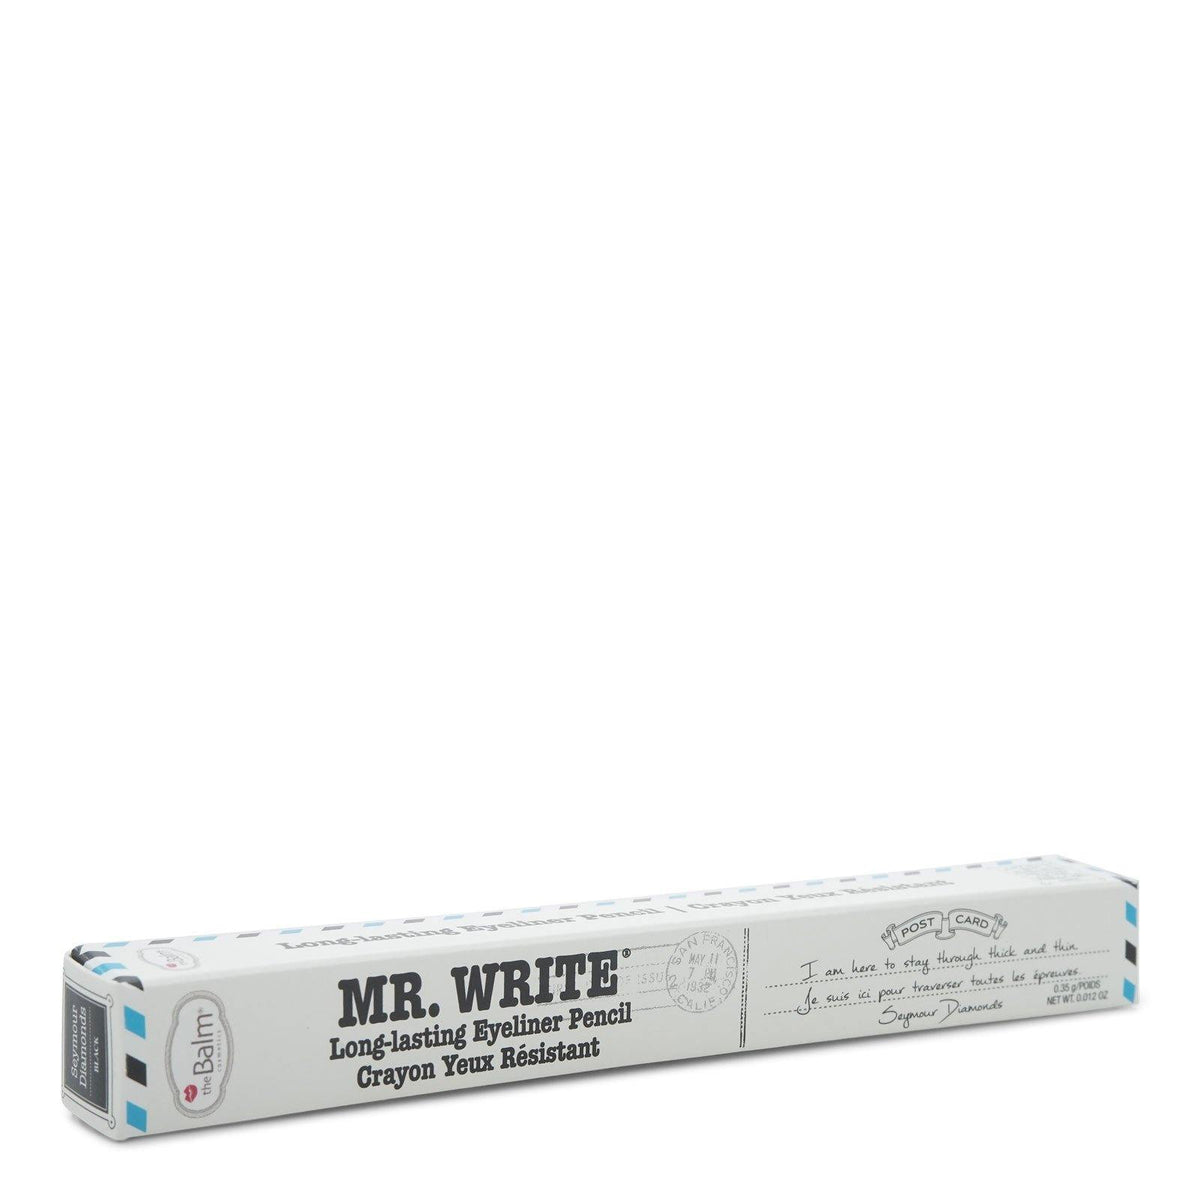 TheBalm - Mr. Write Long Lasting Eyeliner Pencil - Diamonds (Black), 0.01 oz (3/cs)